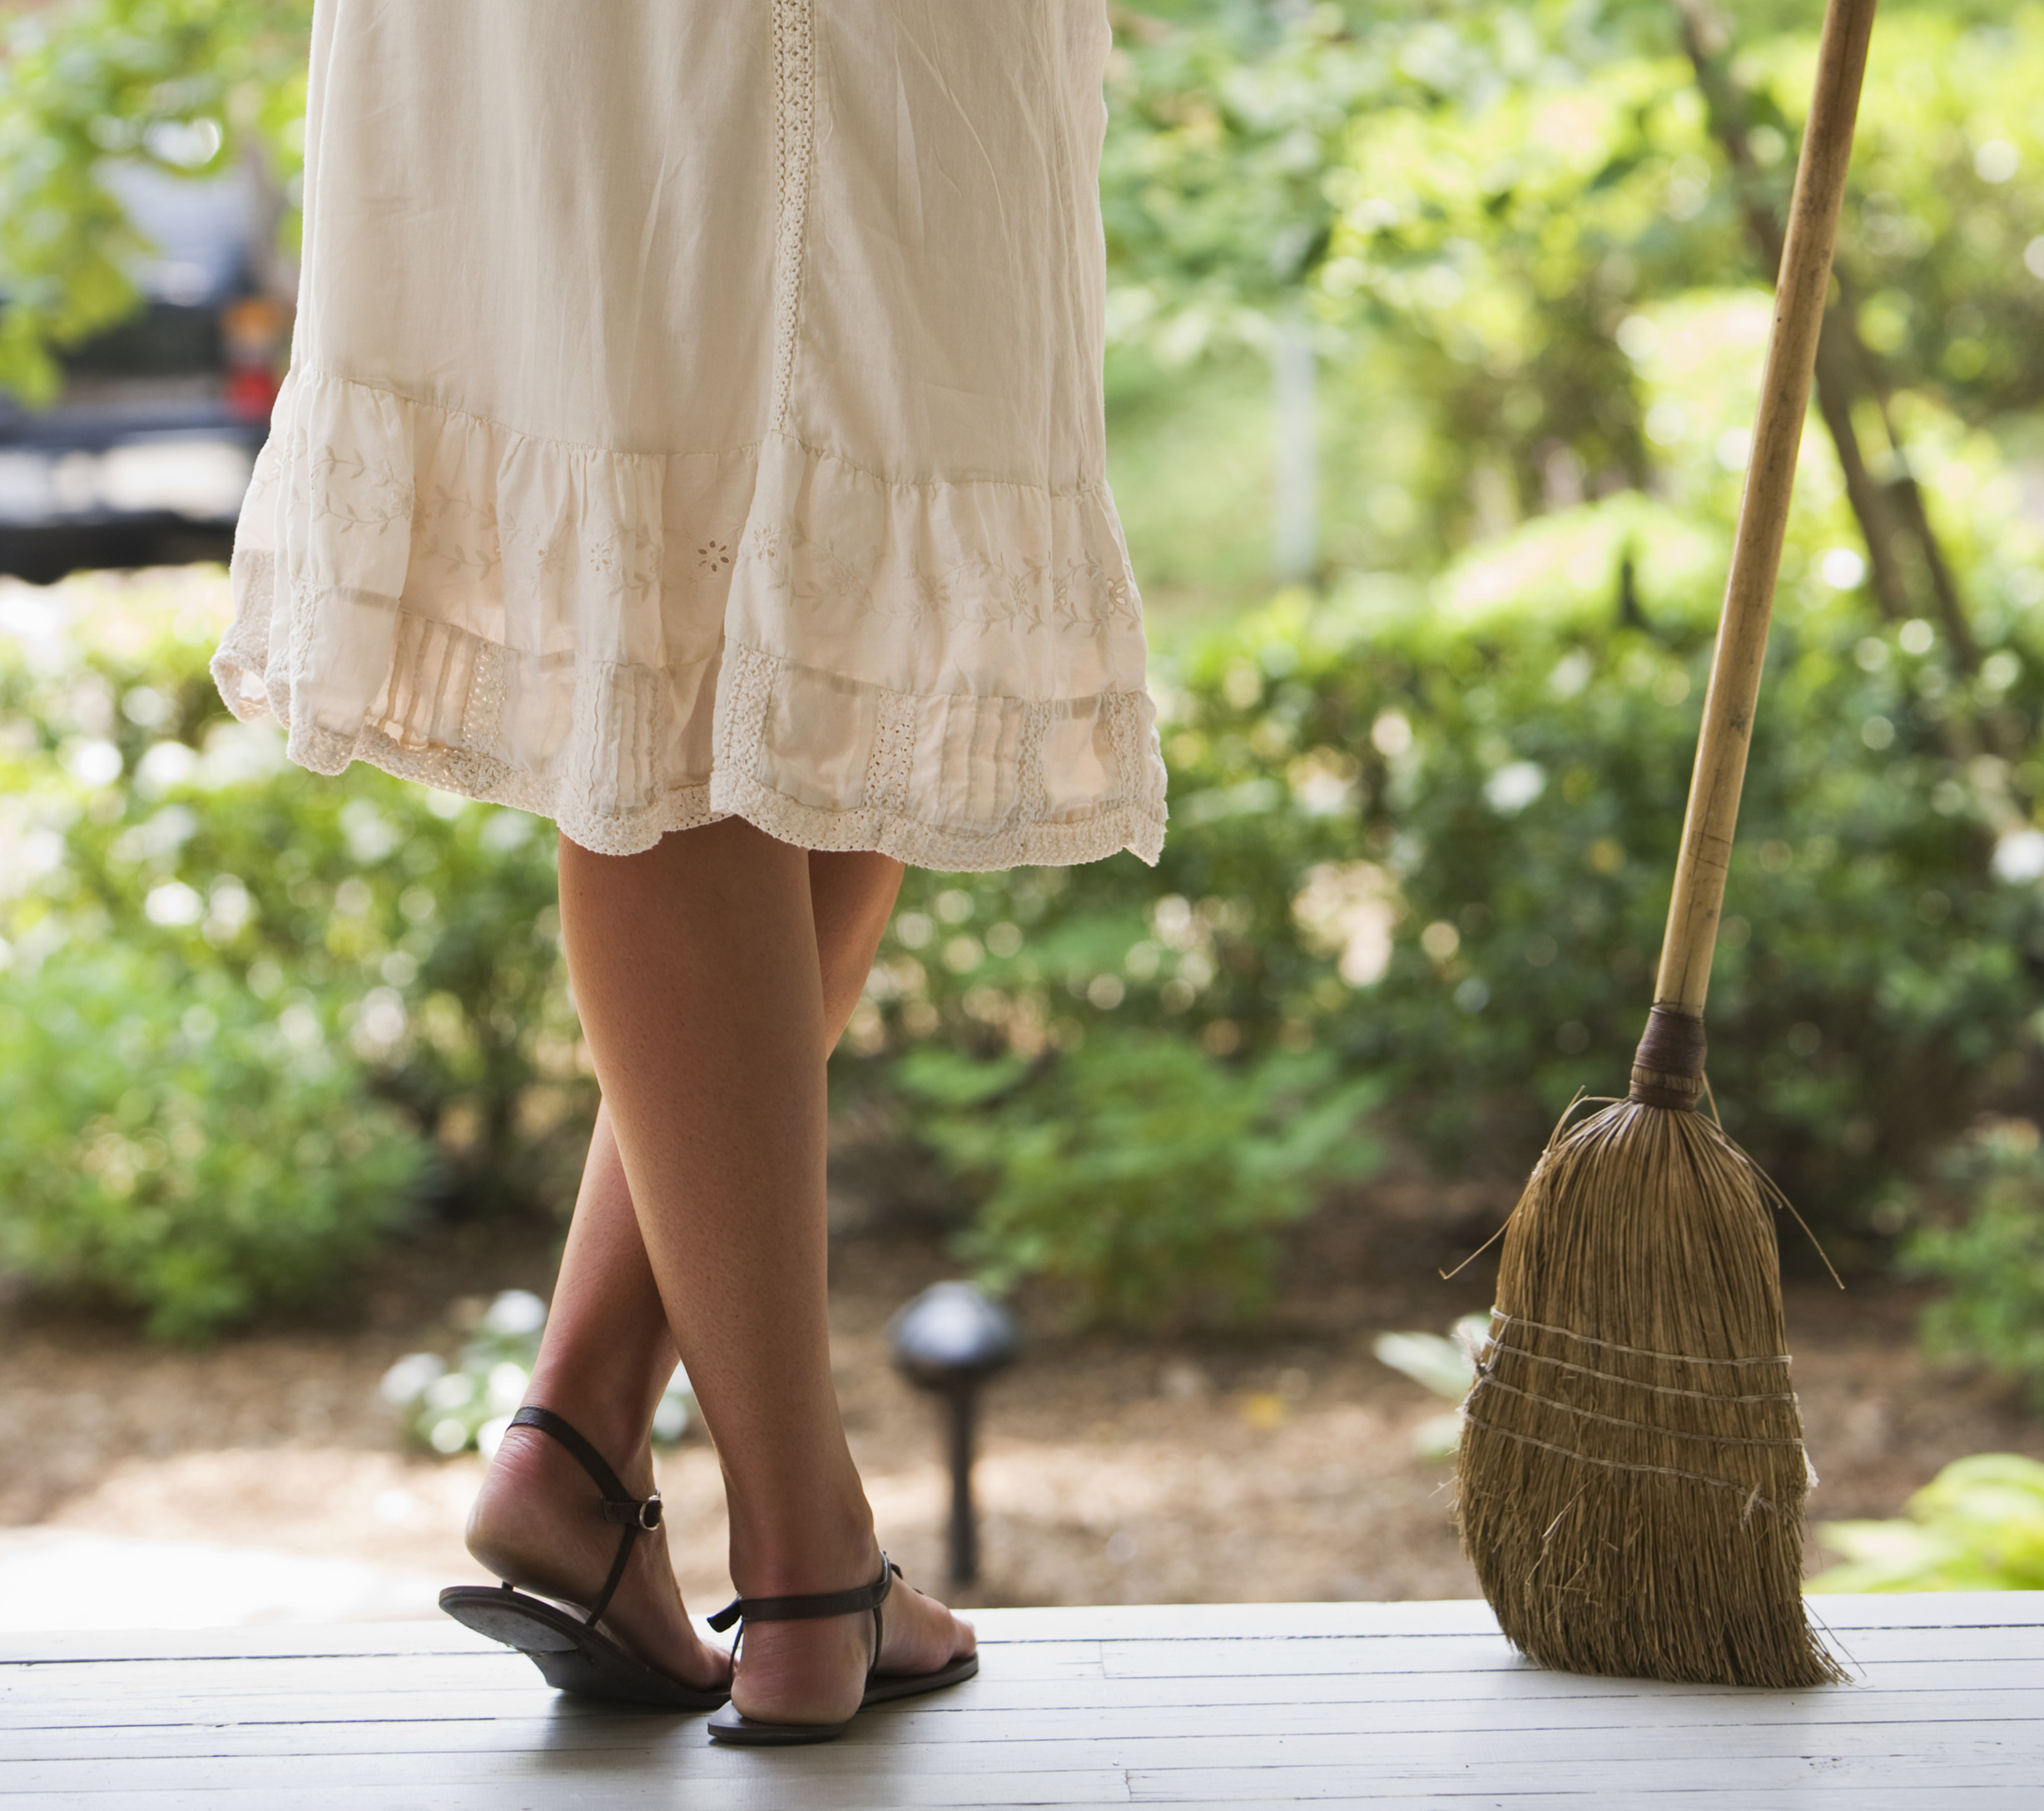 Green Cleaning Tips for Patios